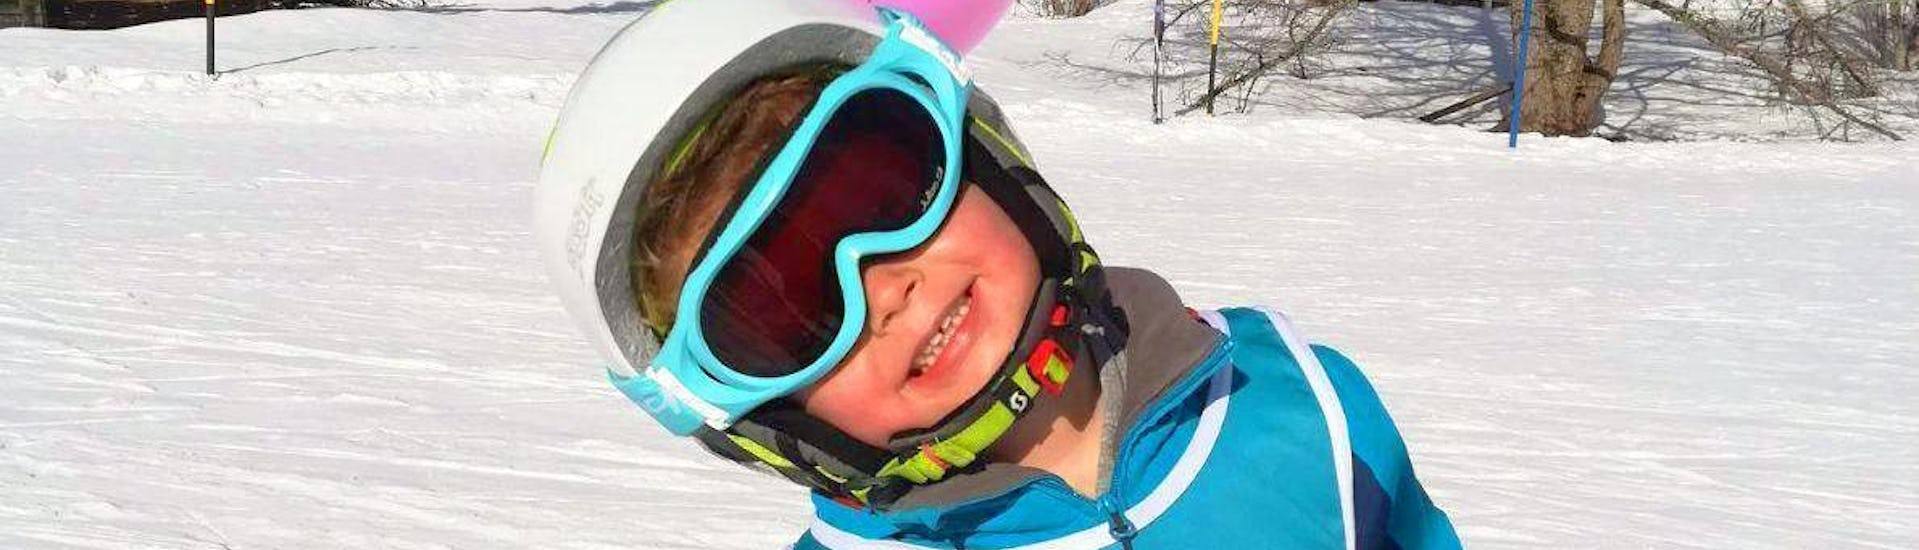 Child smiles into the camera during his Private Ski Lessons for Kids - All Ages with the ski school Diablerets Pure Trace.